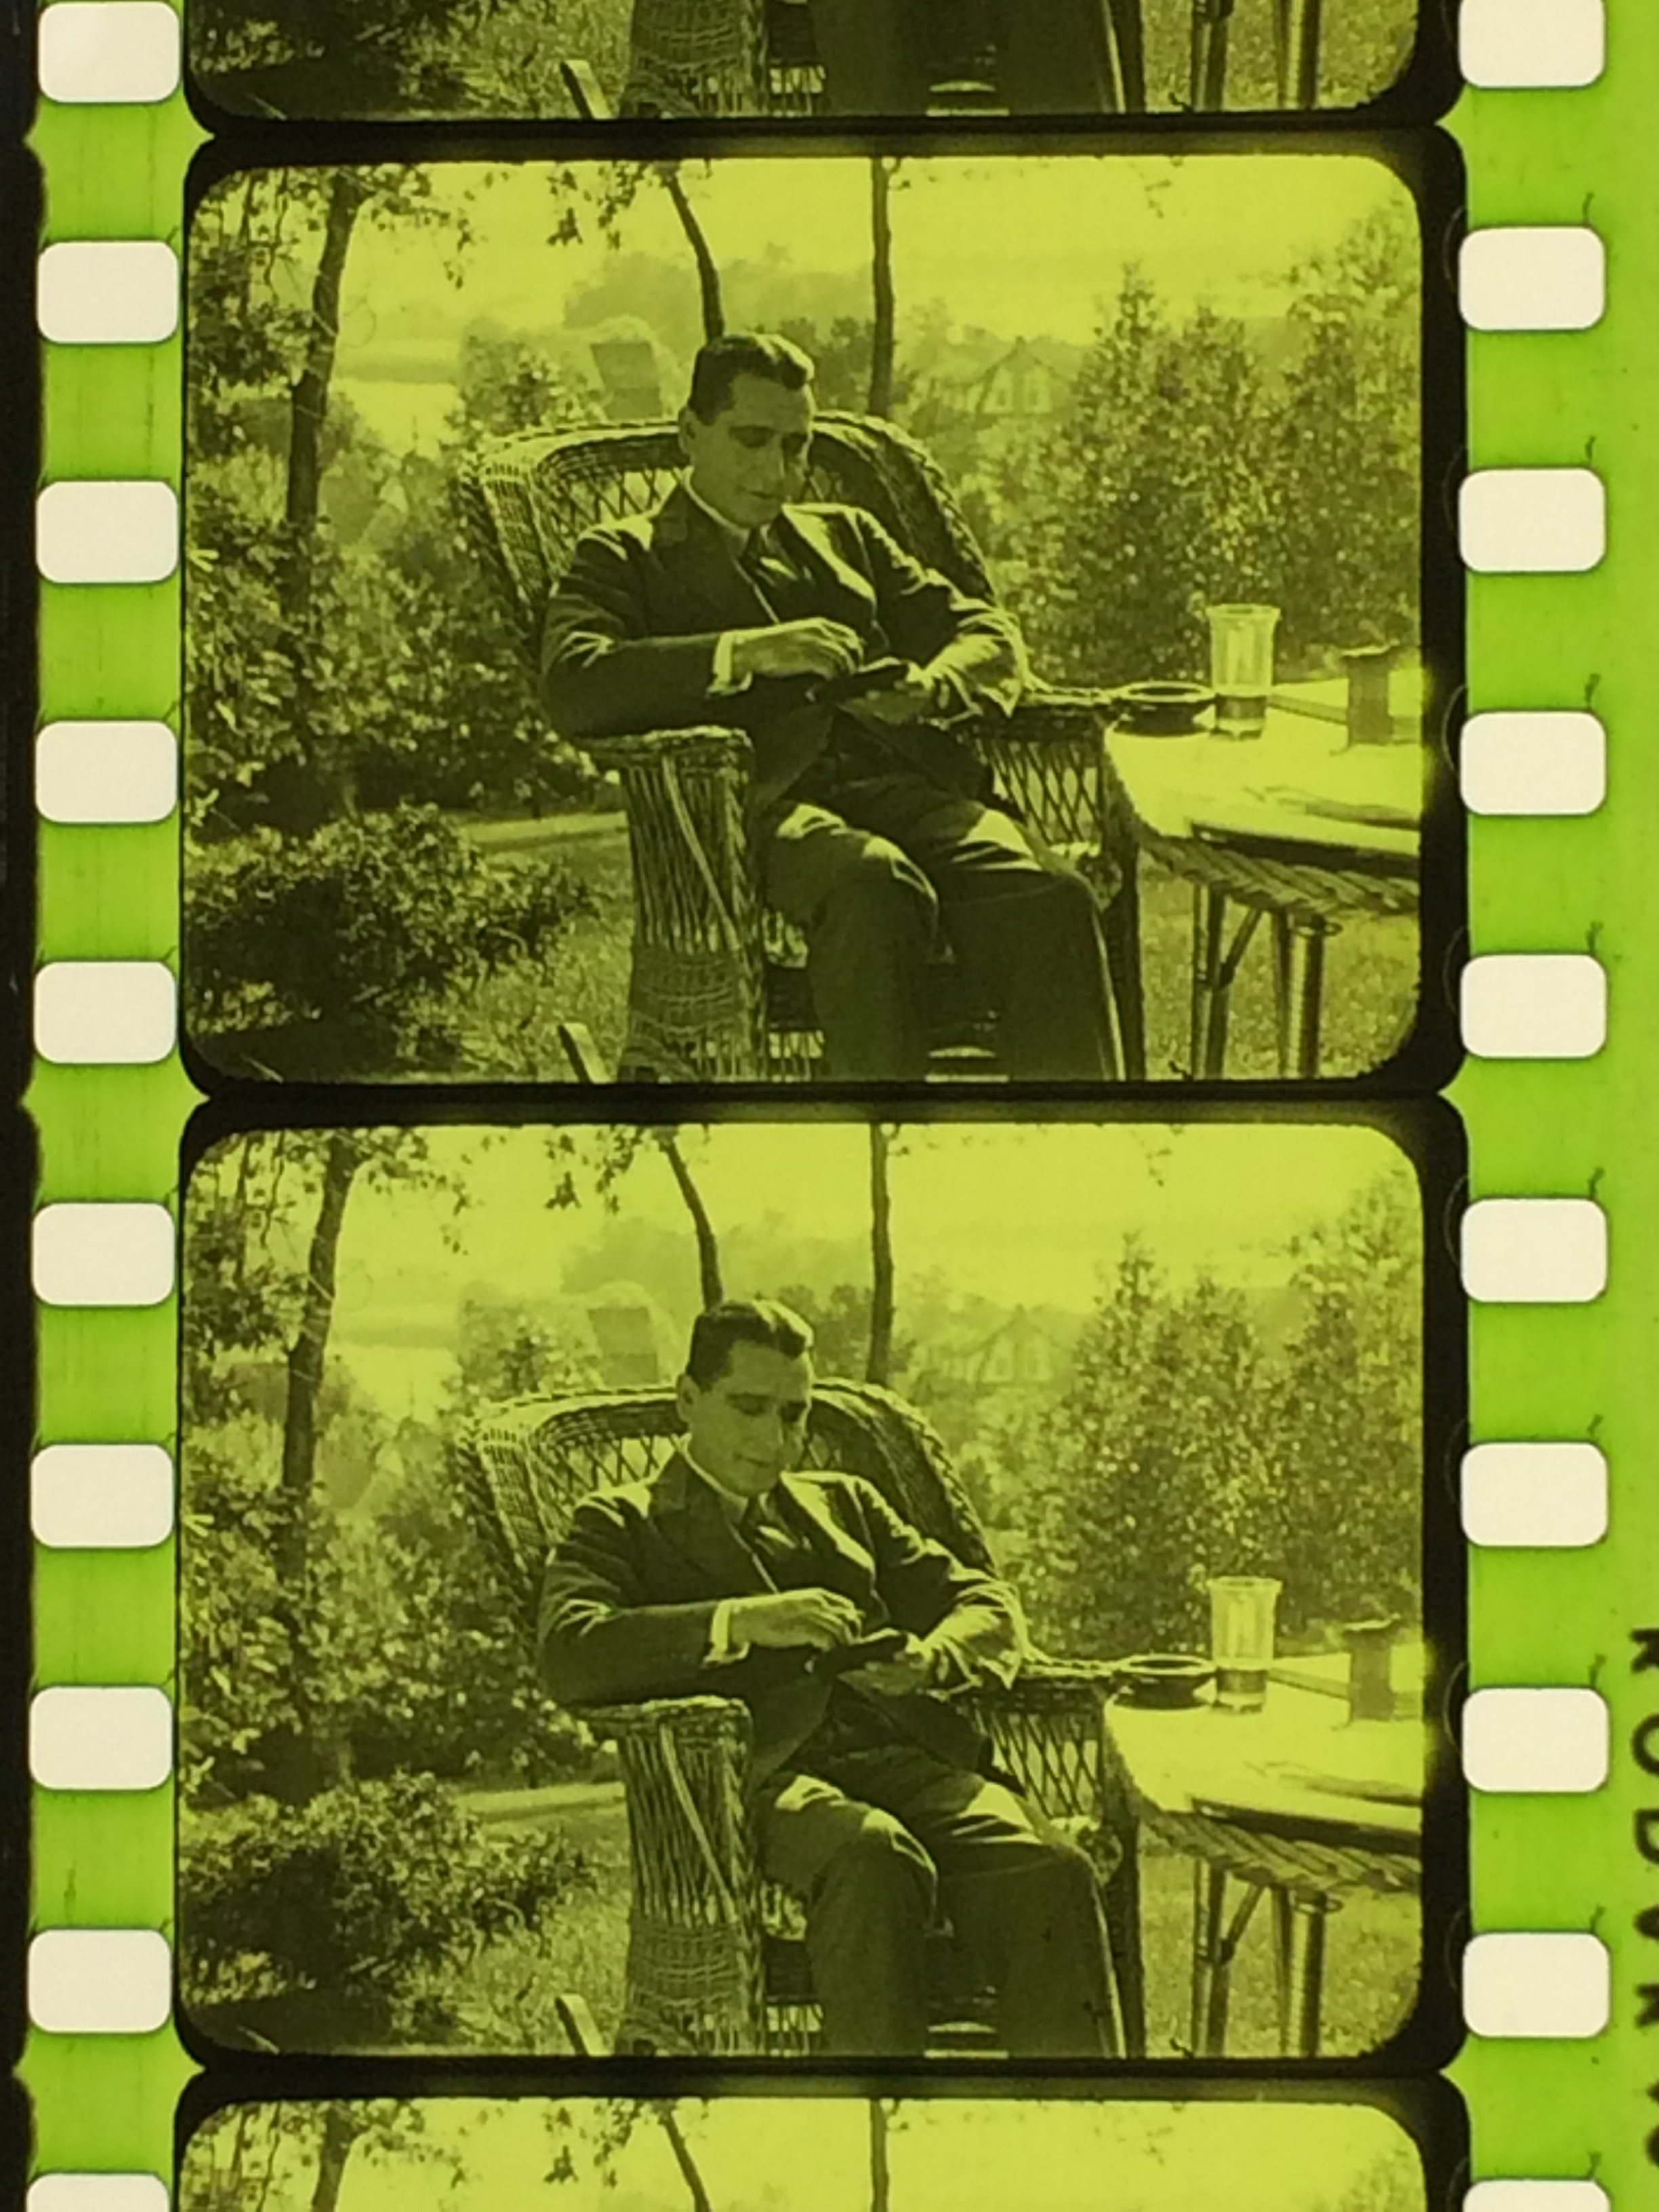 """Image of frame of 1926 movie """"Through Life's Windows"""" with green tint"""